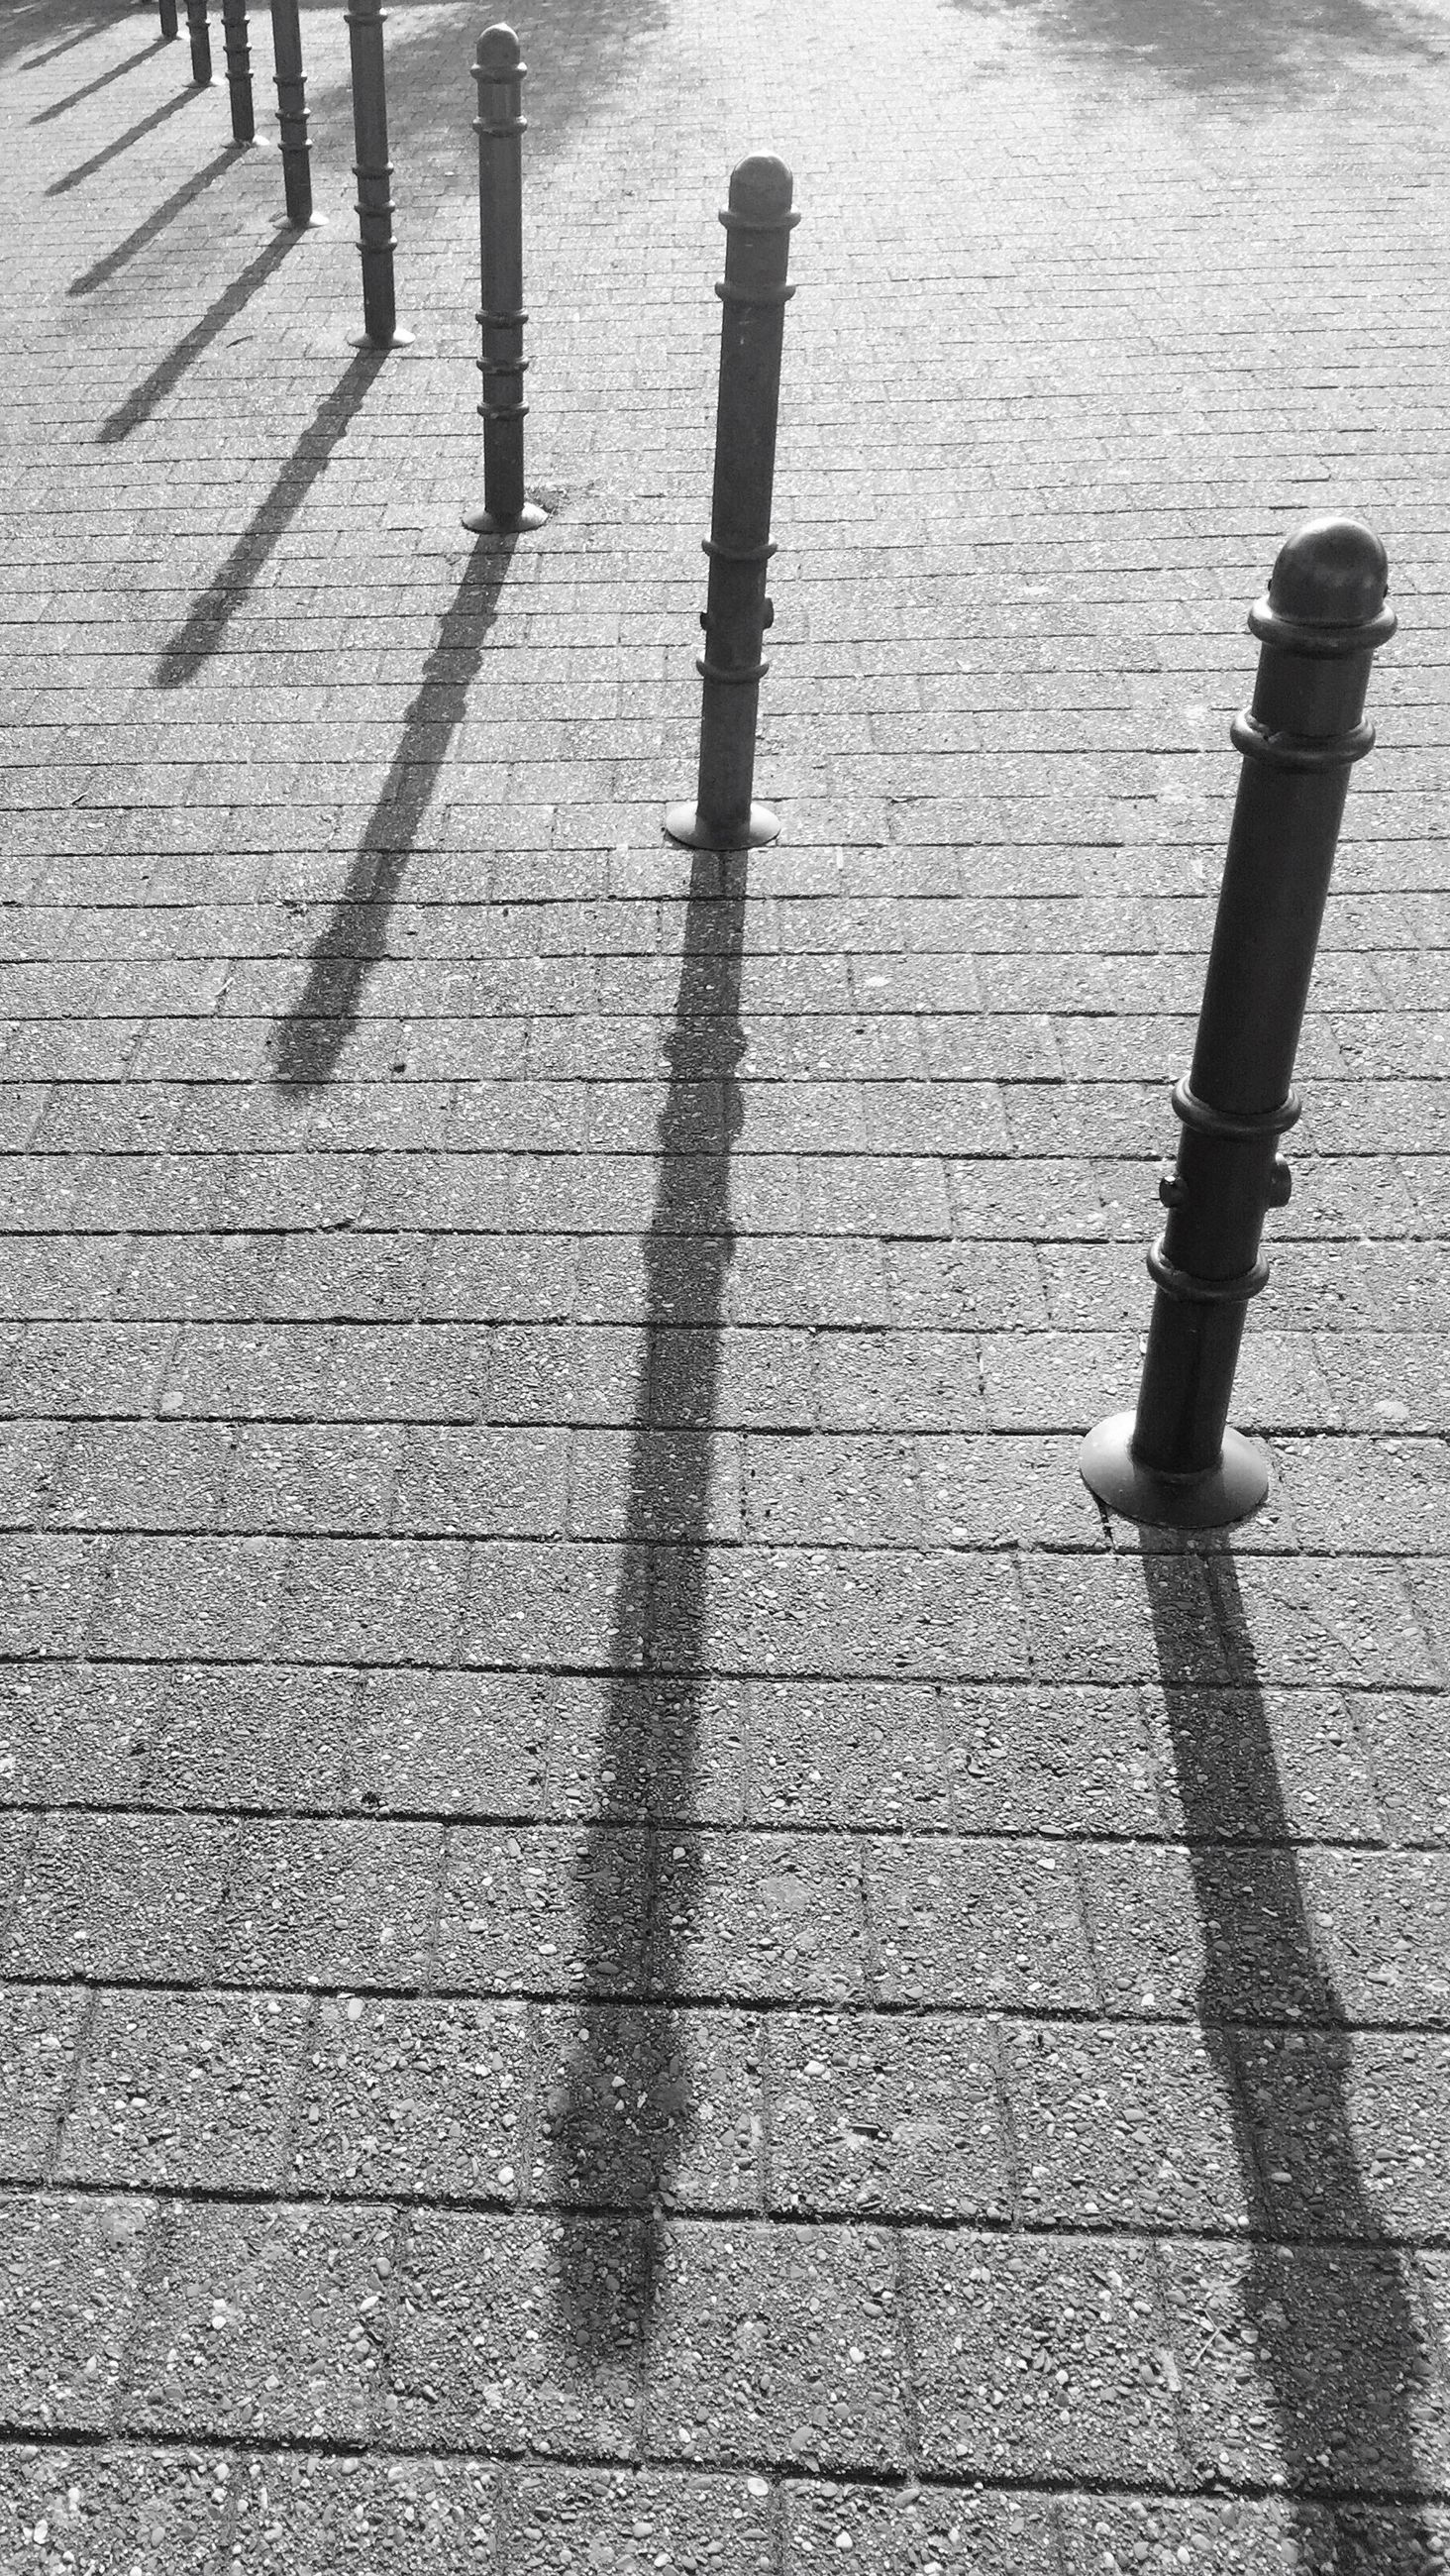 sunlight, shadow, high angle view, day, long shadow - shadow, outdoors, no people